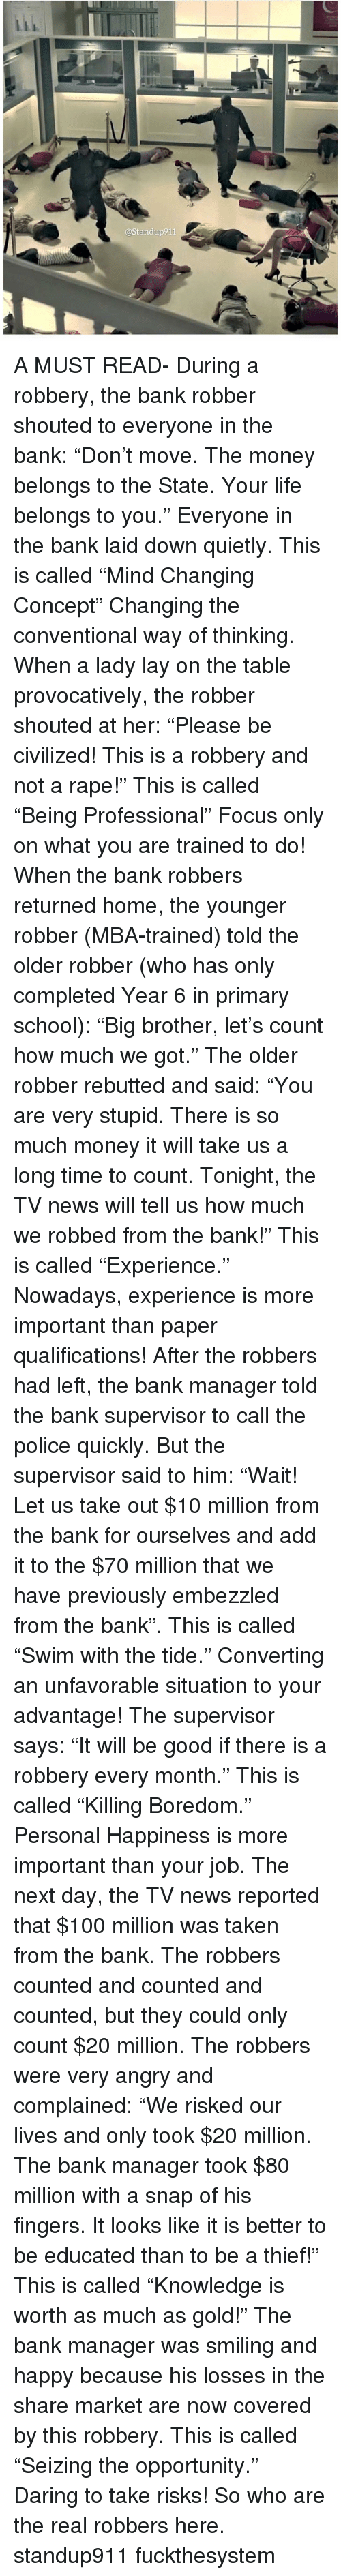 "Anaconda, Life, and Memes: @Standup911 A MUST READ- During a robbery, the bank robber shouted to everyone in the bank: ""Don't move. The money belongs to the State. Your life belongs to you."" Everyone in the bank laid down quietly. This is called ""Mind Changing Concept"" Changing the conventional way of thinking. When a lady lay on the table provocatively, the robber shouted at her: ""Please be civilized! This is a robbery and not a rape!"" This is called ""Being Professional"" Focus only on what you are trained to do! When the bank robbers returned home, the younger robber (MBA-trained) told the older robber (who has only completed Year 6 in primary school): ""Big brother, let's count how much we got."" The older robber rebutted and said: ""You are very stupid. There is so much money it will take us a long time to count. Tonight, the TV news will tell us how much we robbed from the bank!"" This is called ""Experience."" Nowadays, experience is more important than paper qualifications! After the robbers had left, the bank manager told the bank supervisor to call the police quickly. But the supervisor said to him: ""Wait! Let us take out $10 million from the bank for ourselves and add it to the $70 million that we have previously embezzled from the bank"". This is called ""Swim with the tide."" Converting an unfavorable situation to your advantage! The supervisor says: ""It will be good if there is a robbery every month."" This is called ""Killing Boredom."" Personal Happiness is more important than your job. The next day, the TV news reported that $100 million was taken from the bank. The robbers counted and counted and counted, but they could only count $20 million. The robbers were very angry and complained: ""We risked our lives and only took $20 million. The bank manager took $80 million with a snap of his fingers. It looks like it is better to be educated than to be a thief!"" This is called ""Knowledge is worth as much as gold!"" The bank manager was smiling and happy because his losses in the share market are now covered by this robbery. This is called ""Seizing the opportunity."" Daring to take risks! So who are the real robbers here. standup911 fuckthesystem"